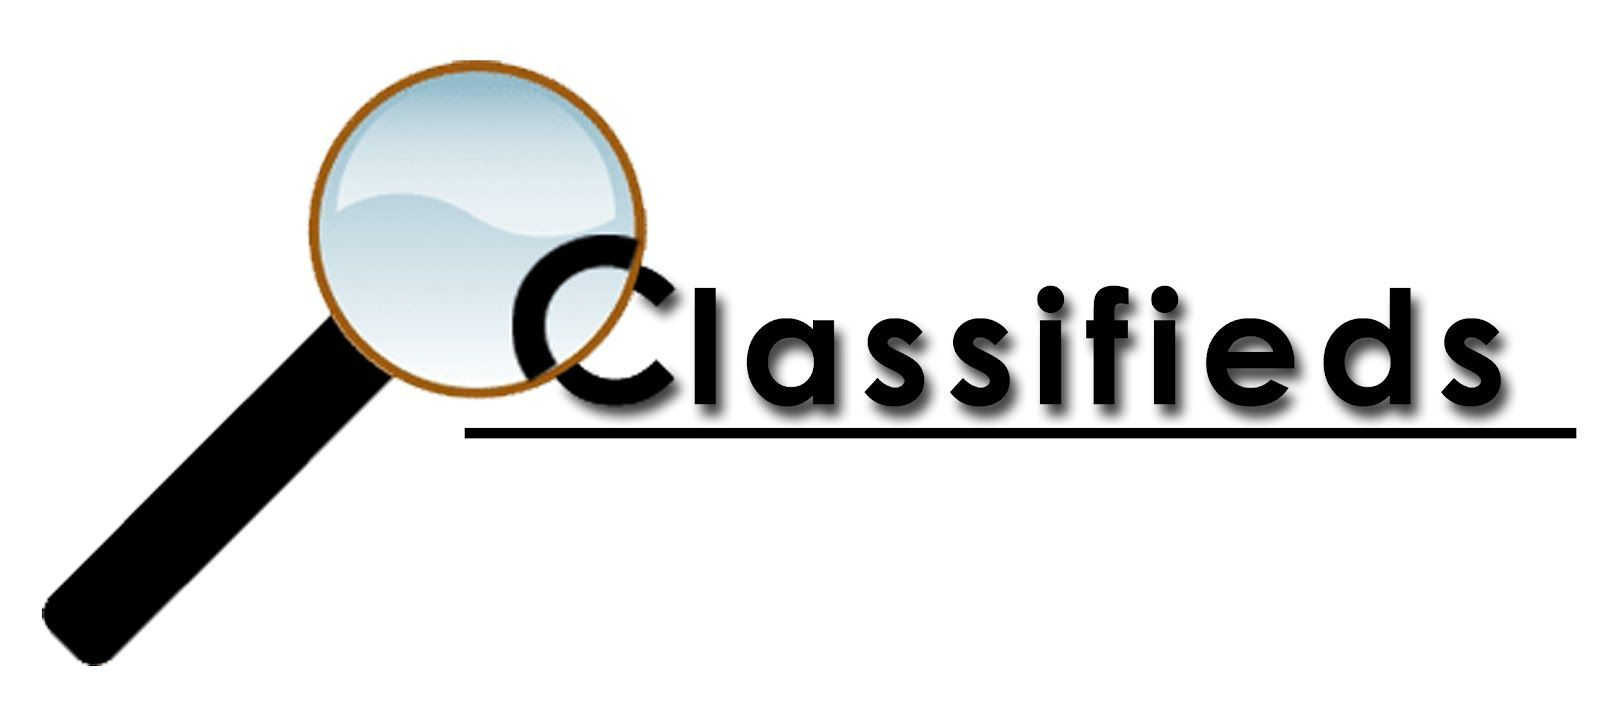 Some of the benefits of classified posting | Best Digital